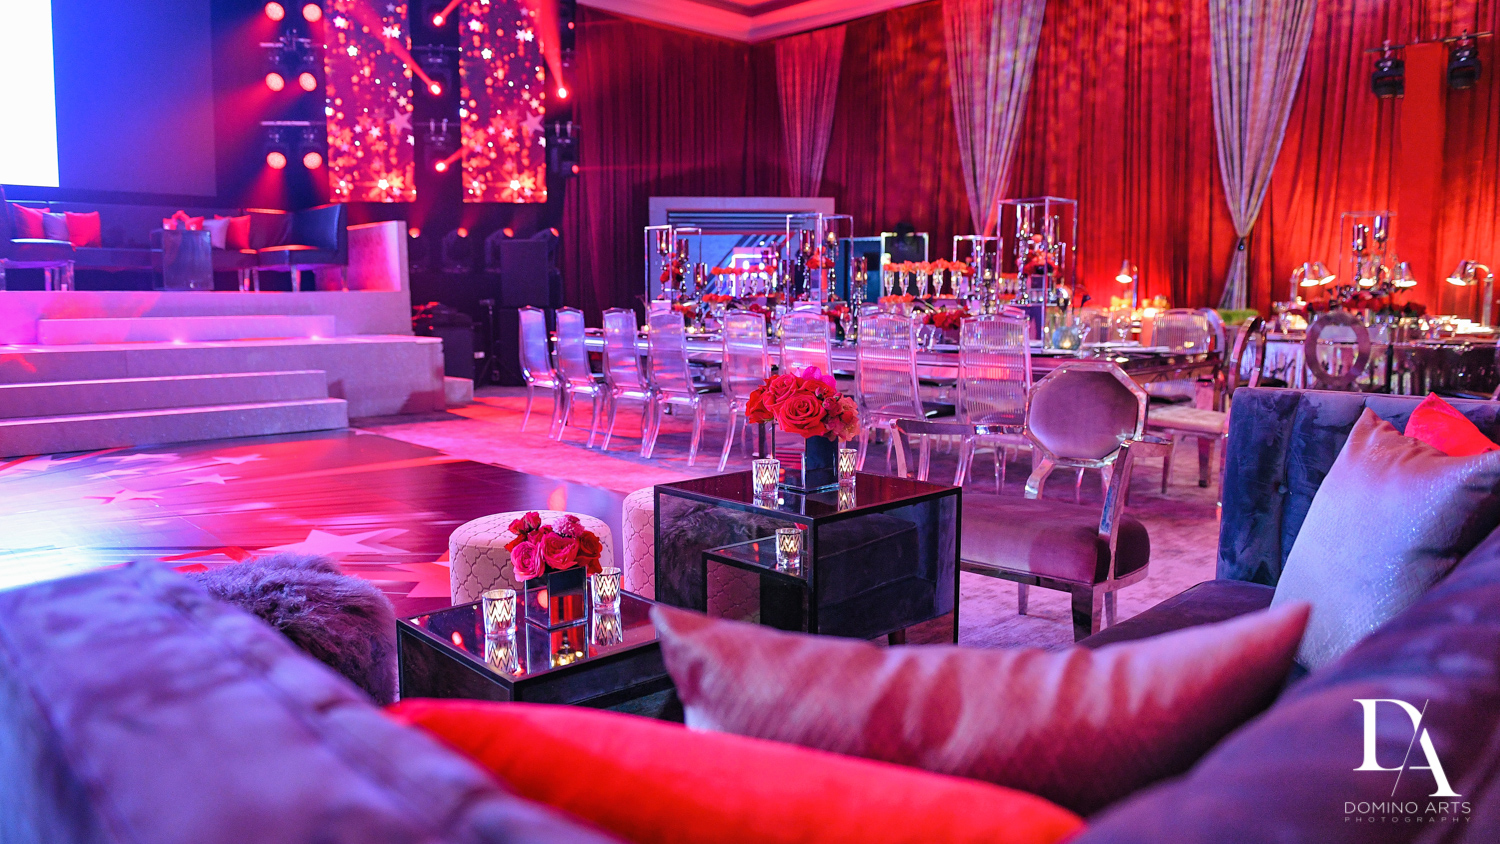 purple red decor at Luxury Celebrity Bat Mitzvah at Four Seasons Hotel Miami by Domino Arts Photography